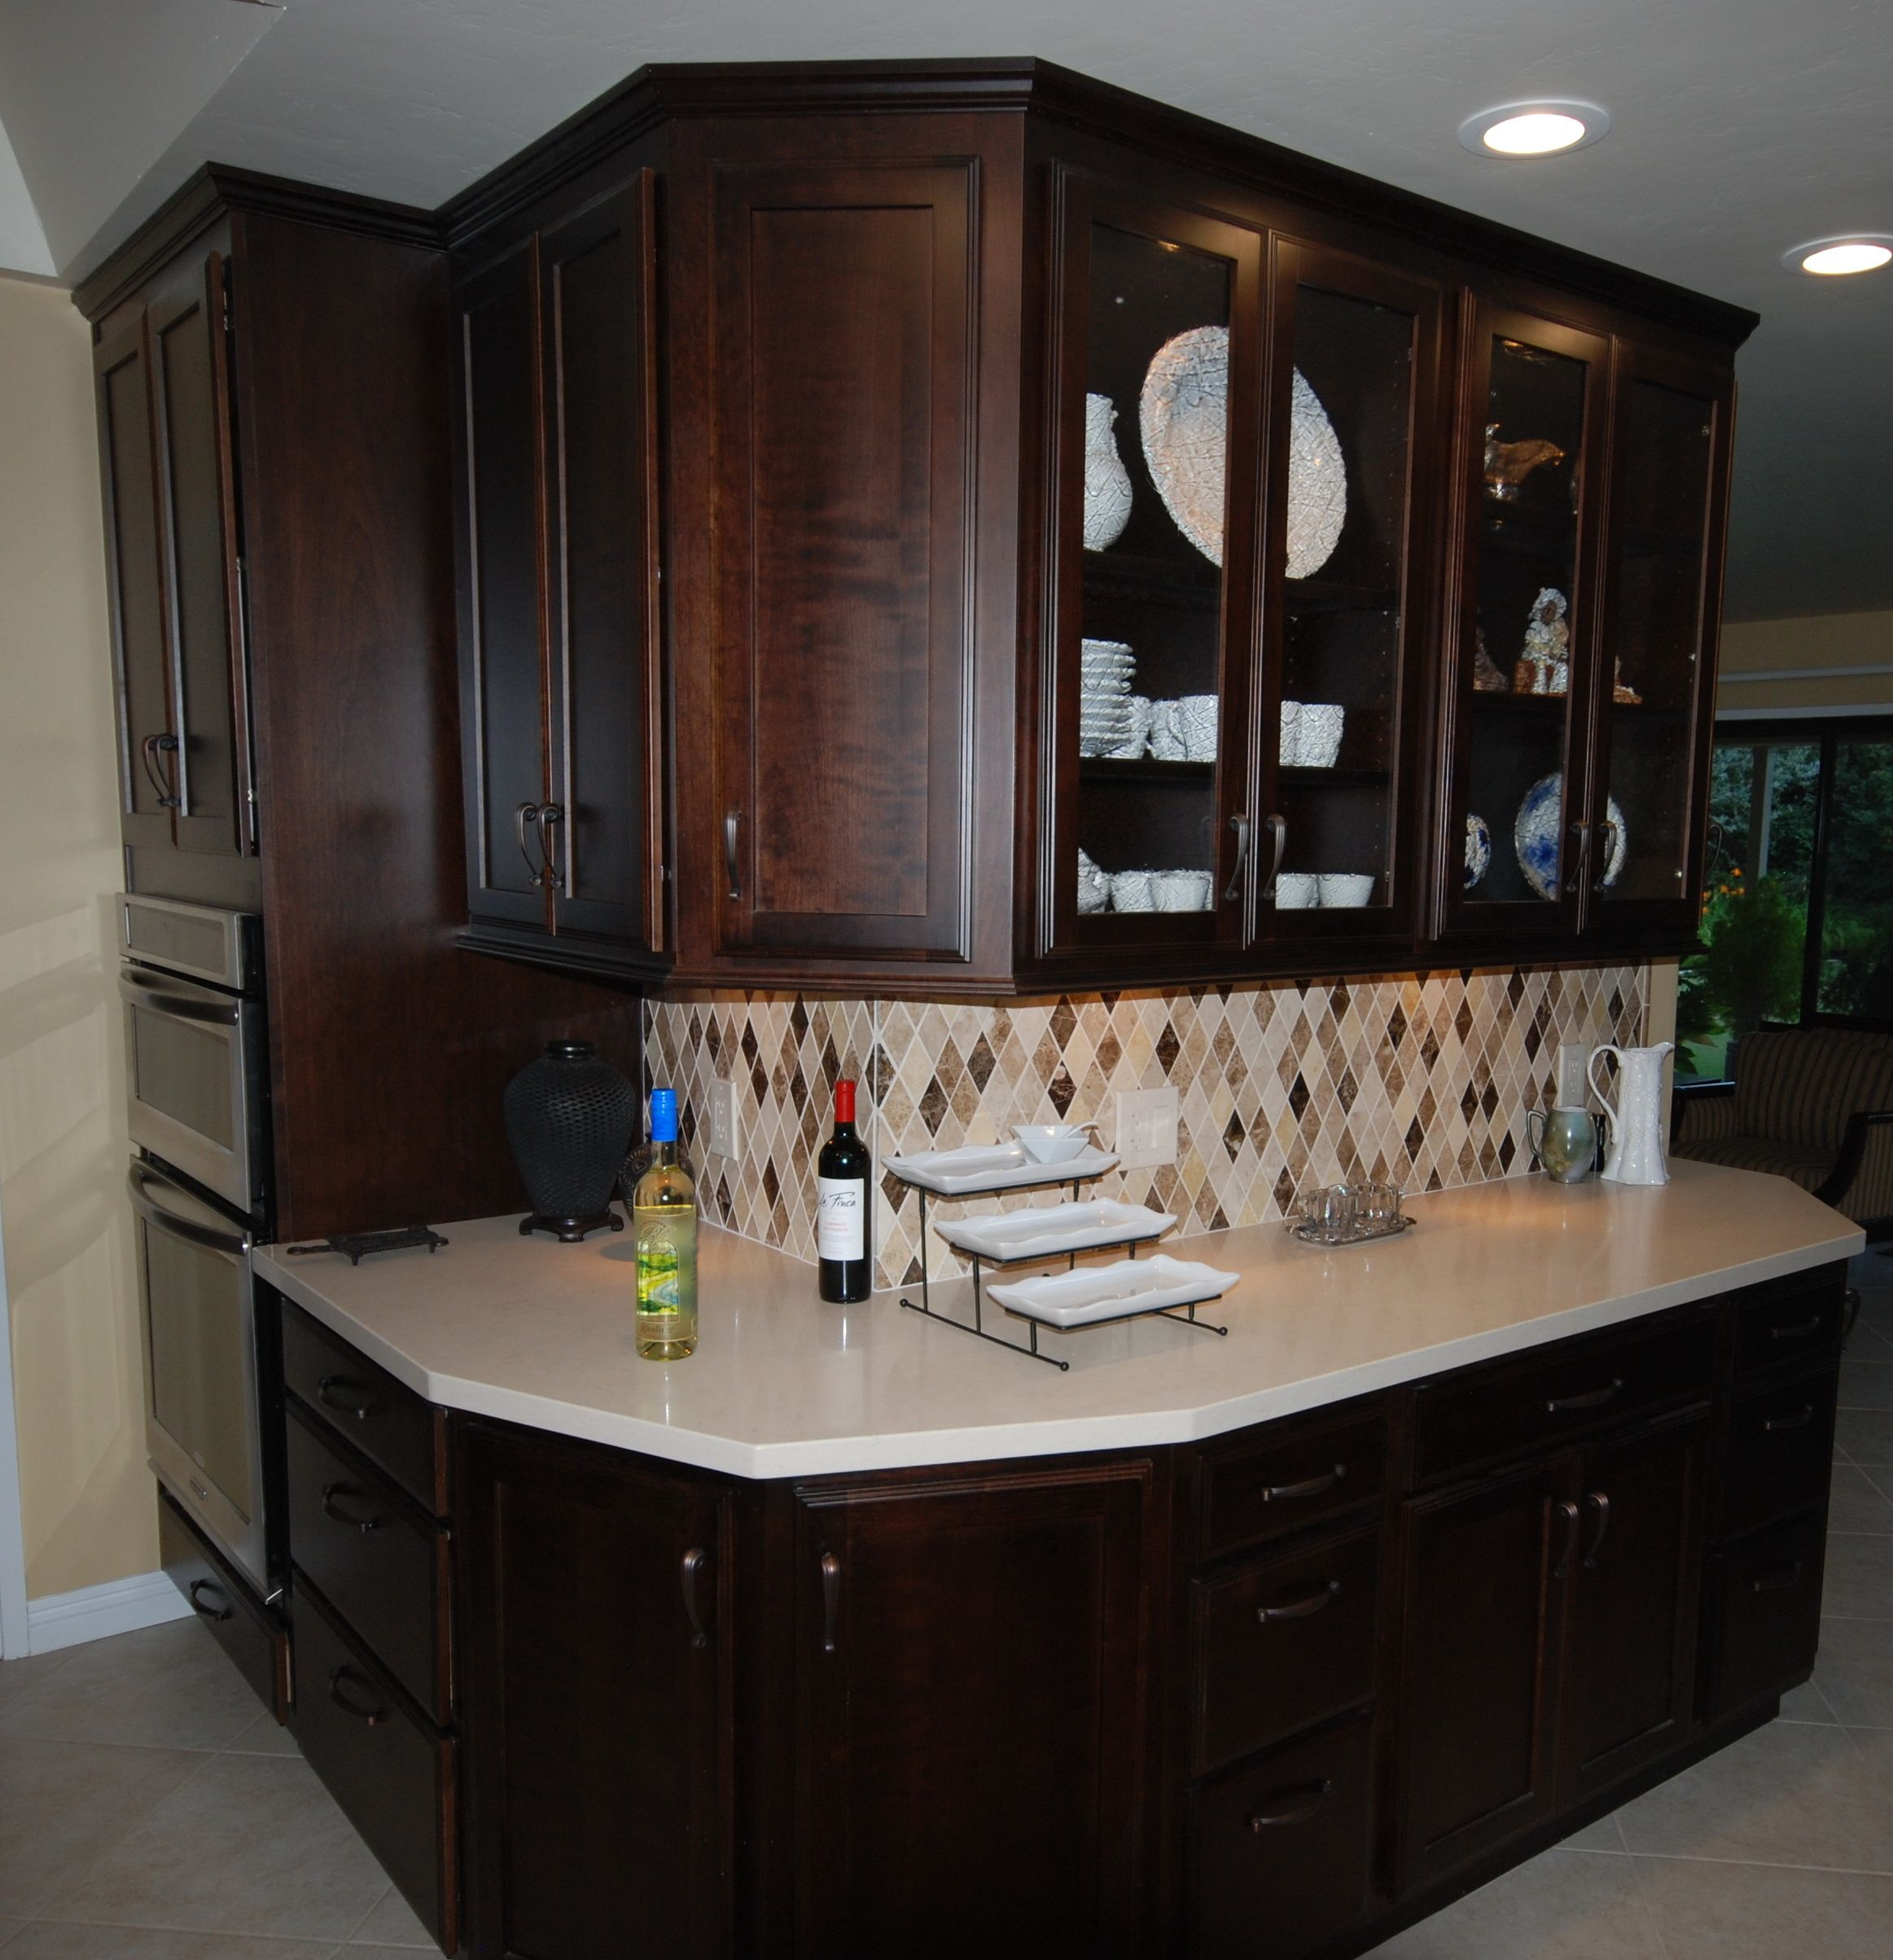 Starmark Cherry Cabinets With Mocha Stain With Caesarstone Dreamy Marfil Quartz And Marble Mosaic Kitchen Cabinets In Bathroom Cherry Cabinets Kitchen Remodel